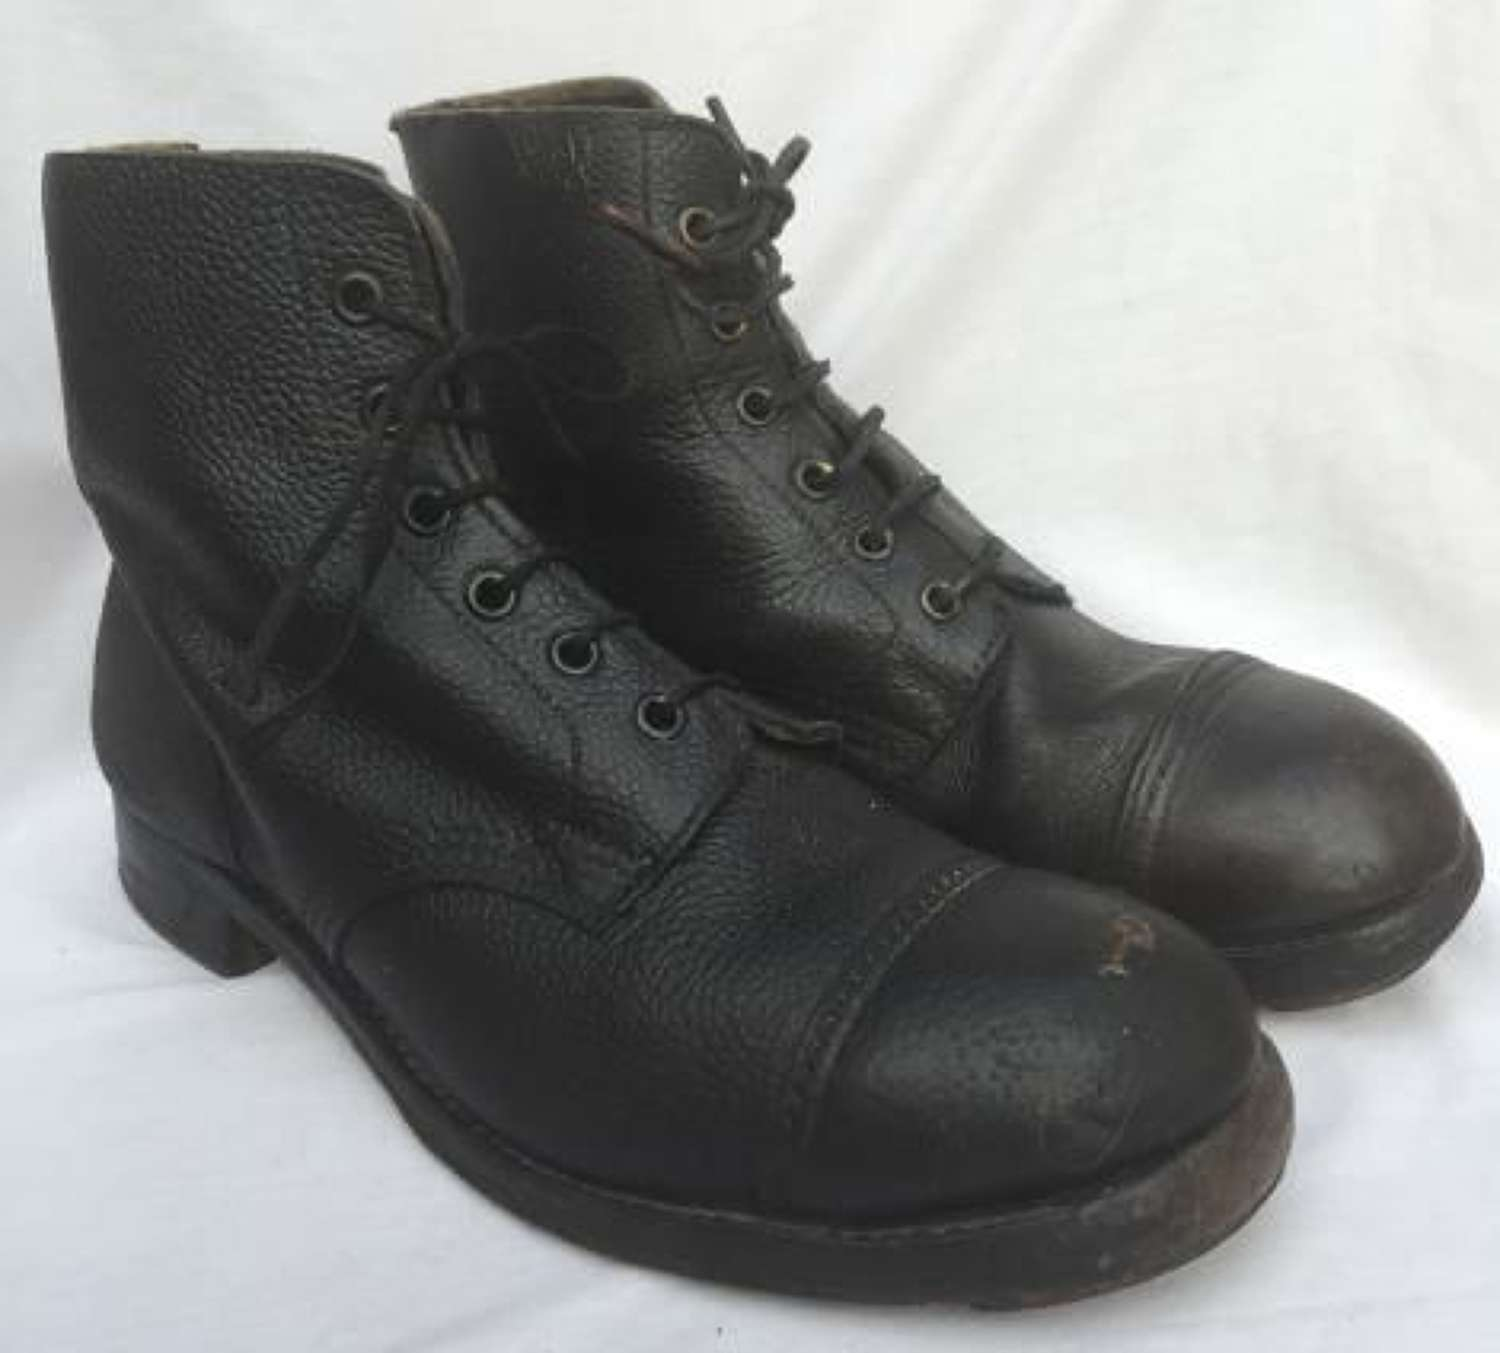 British Army Black Hobnailed 'Ammo' boots size 6